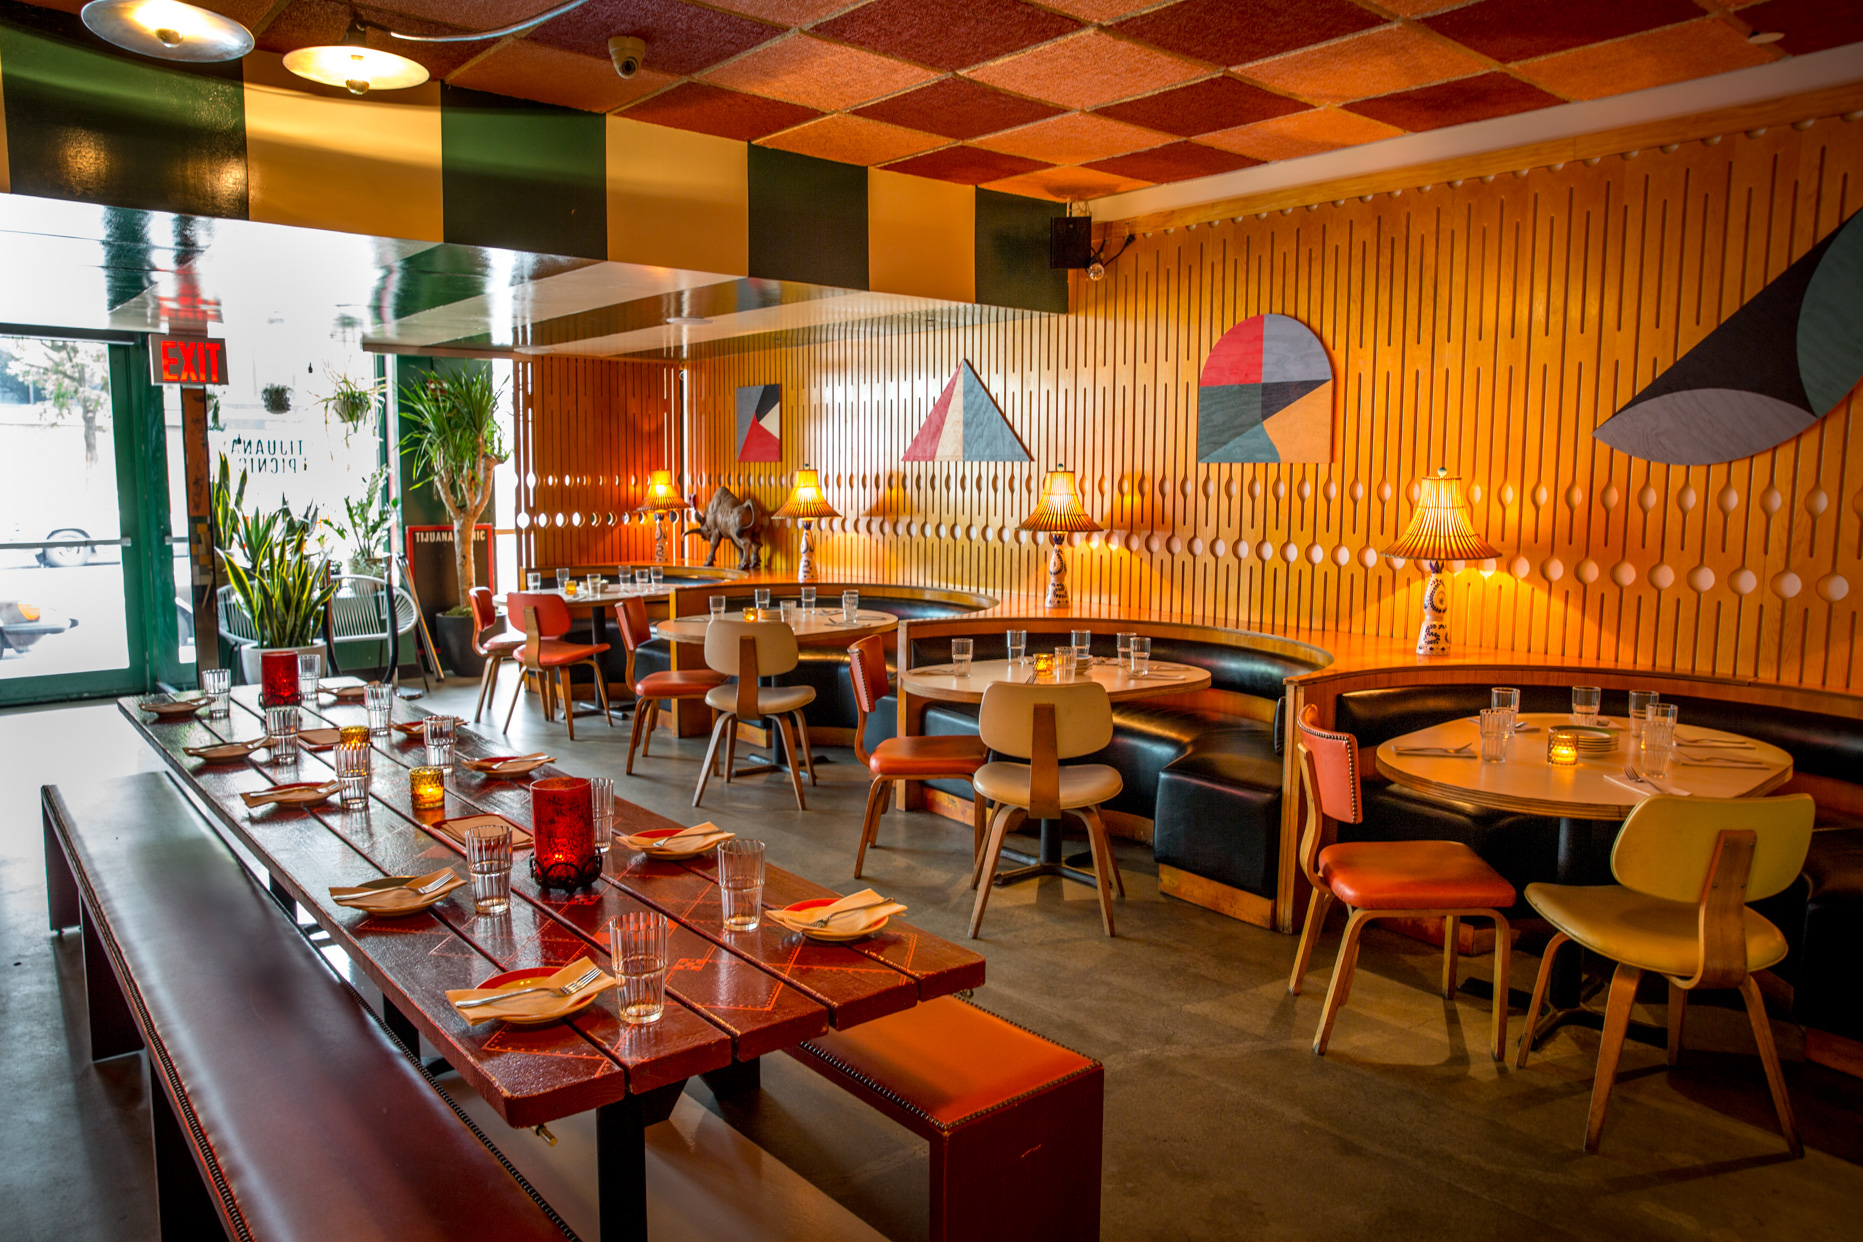 Ground Floor Restaurant  event space at Tijuana Picnic in New York City, NYC, NY/NJ Area